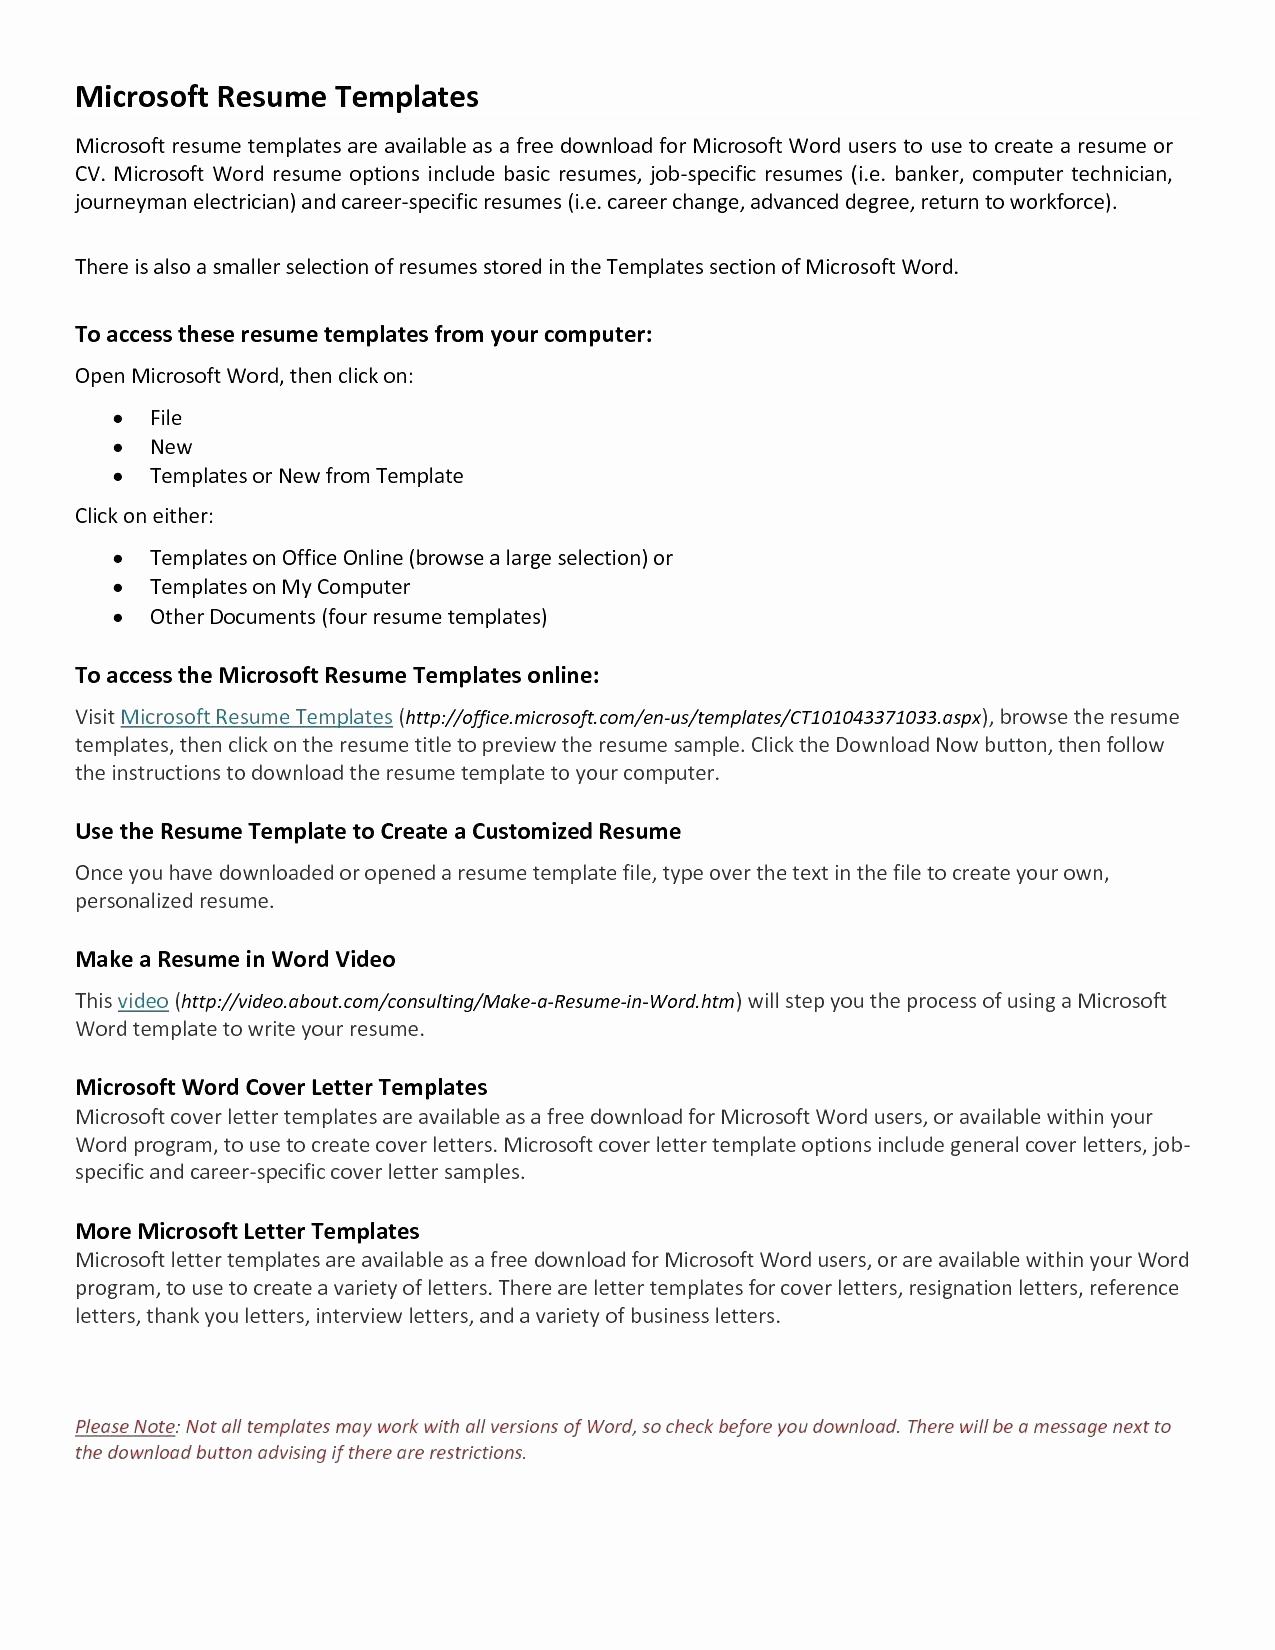 create letter template example-Free Cover Letter Templates for Resumes Fresh Resume Template Examples Unique Professional Job Resume Template Od 20-e